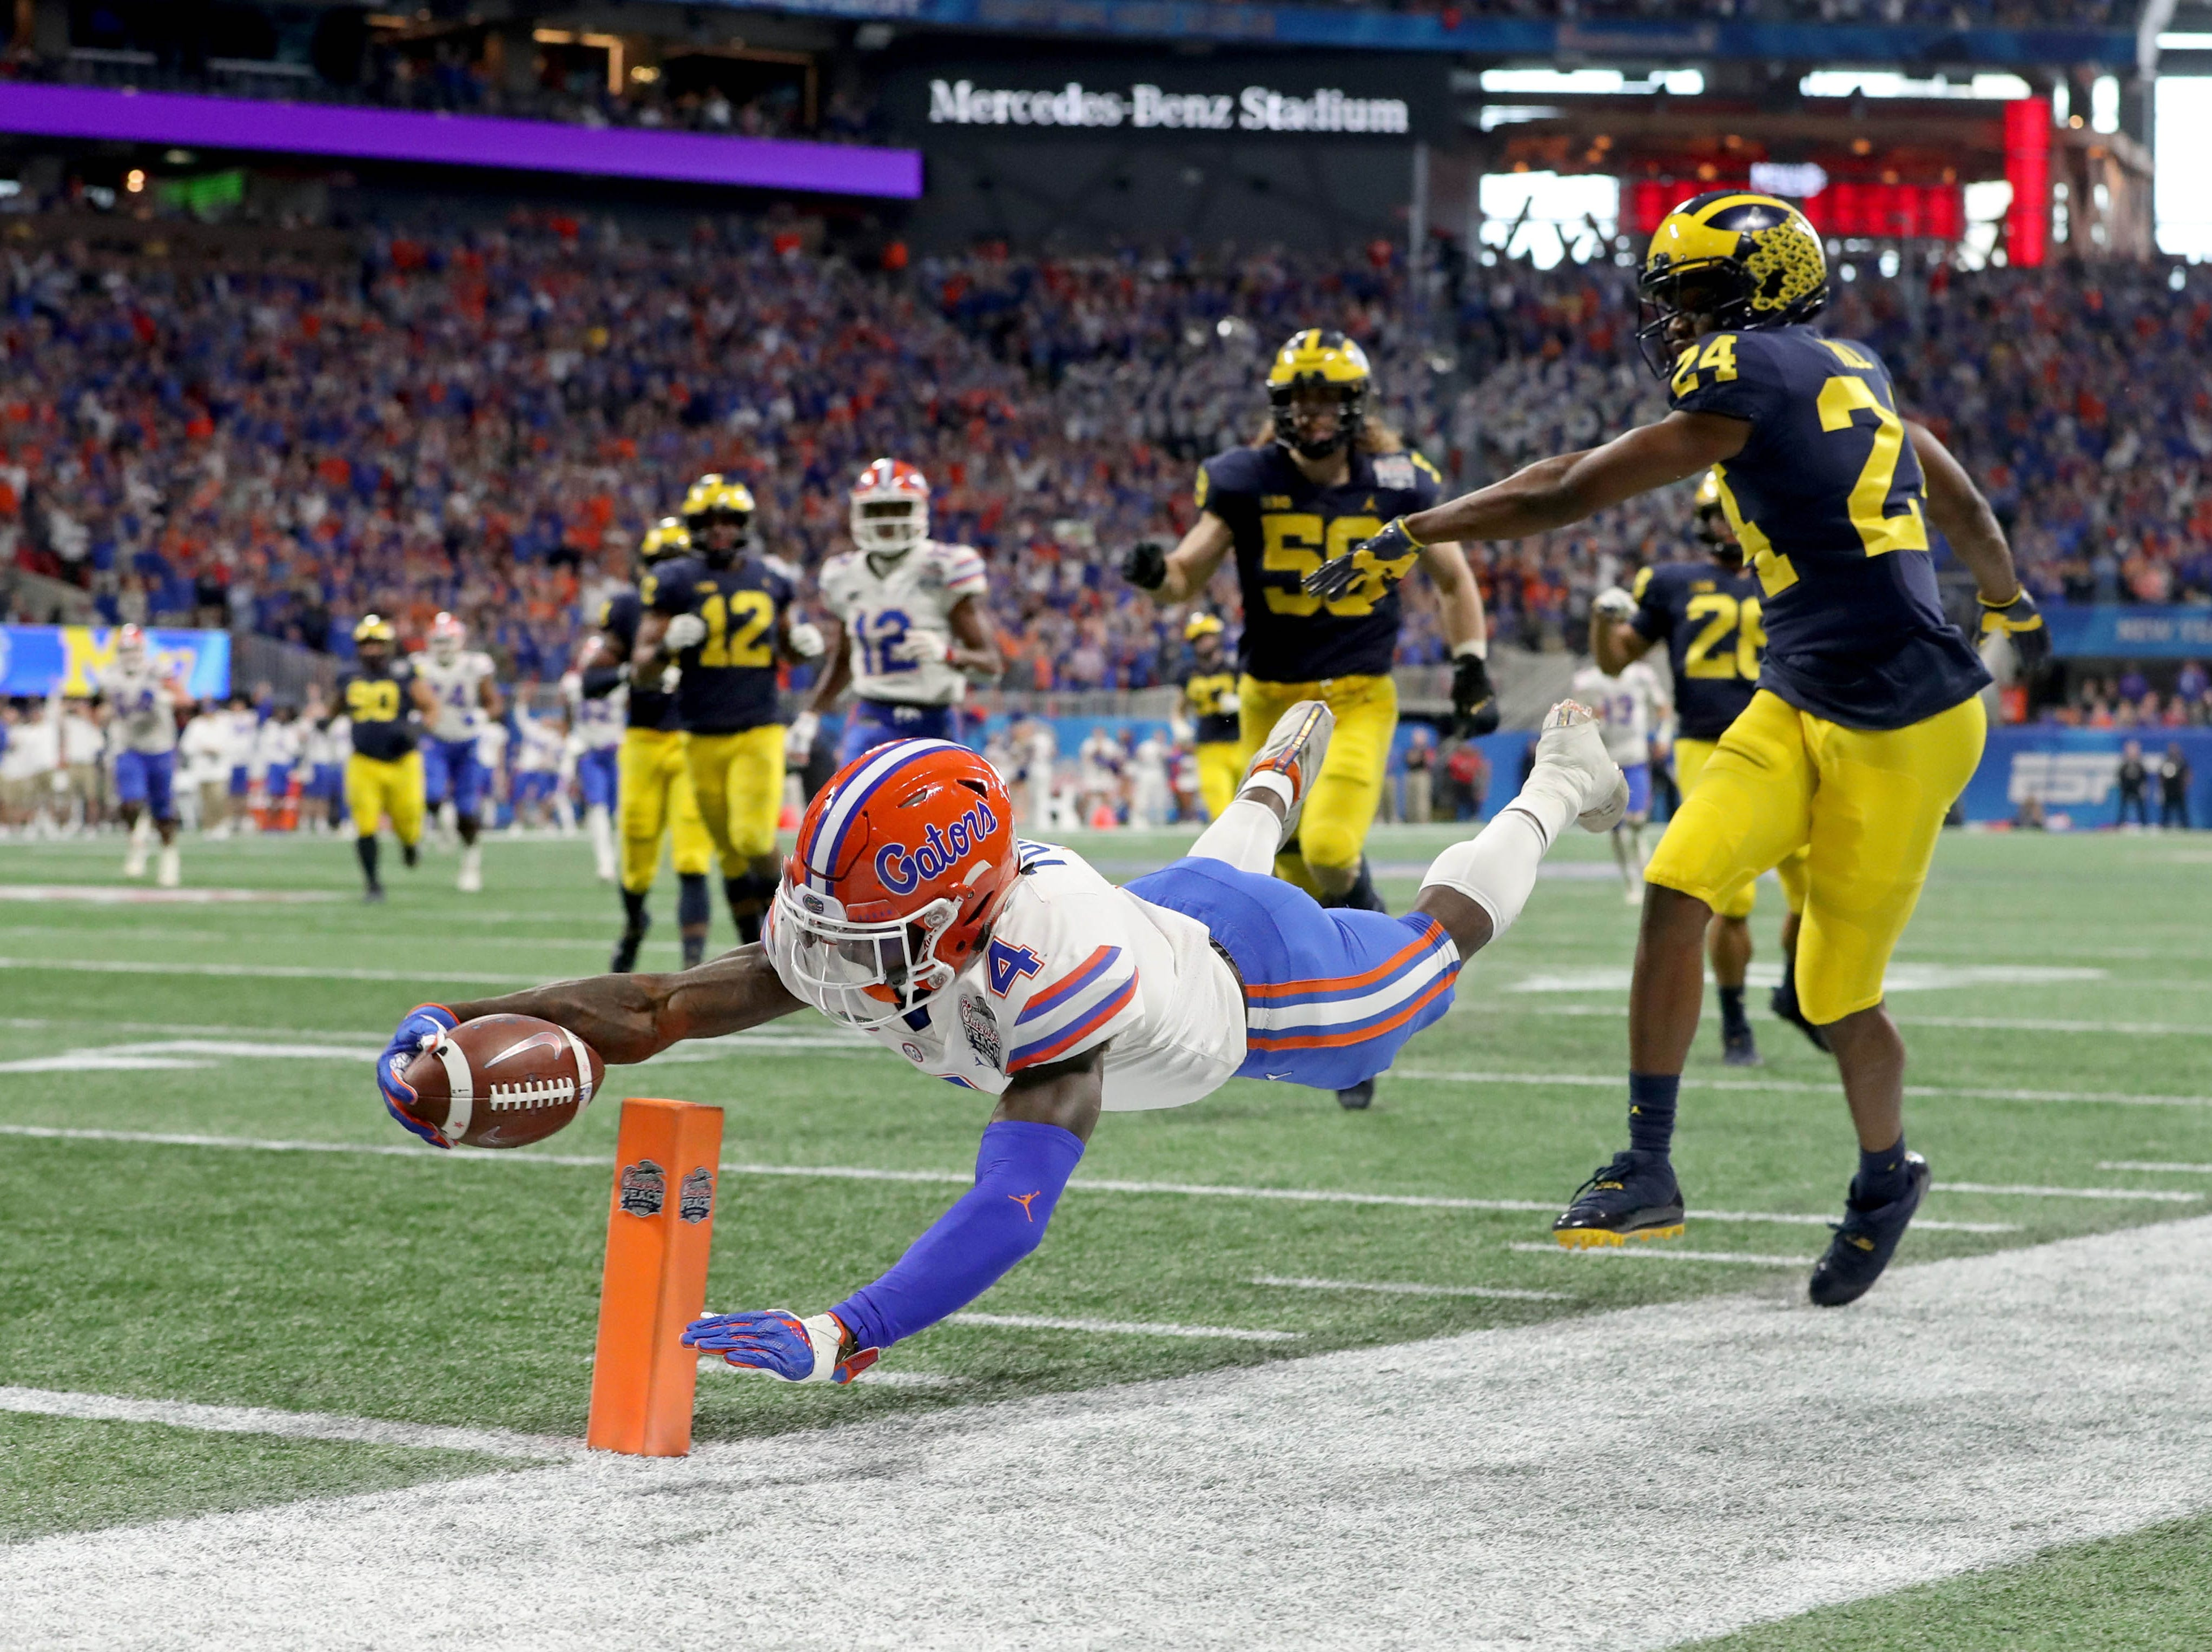 Dec. 29: Florida Gators running back Kadarius Toney (4) dives for the end zone against the Michigan Wolverines in the third quarter of the Peach Bowl.